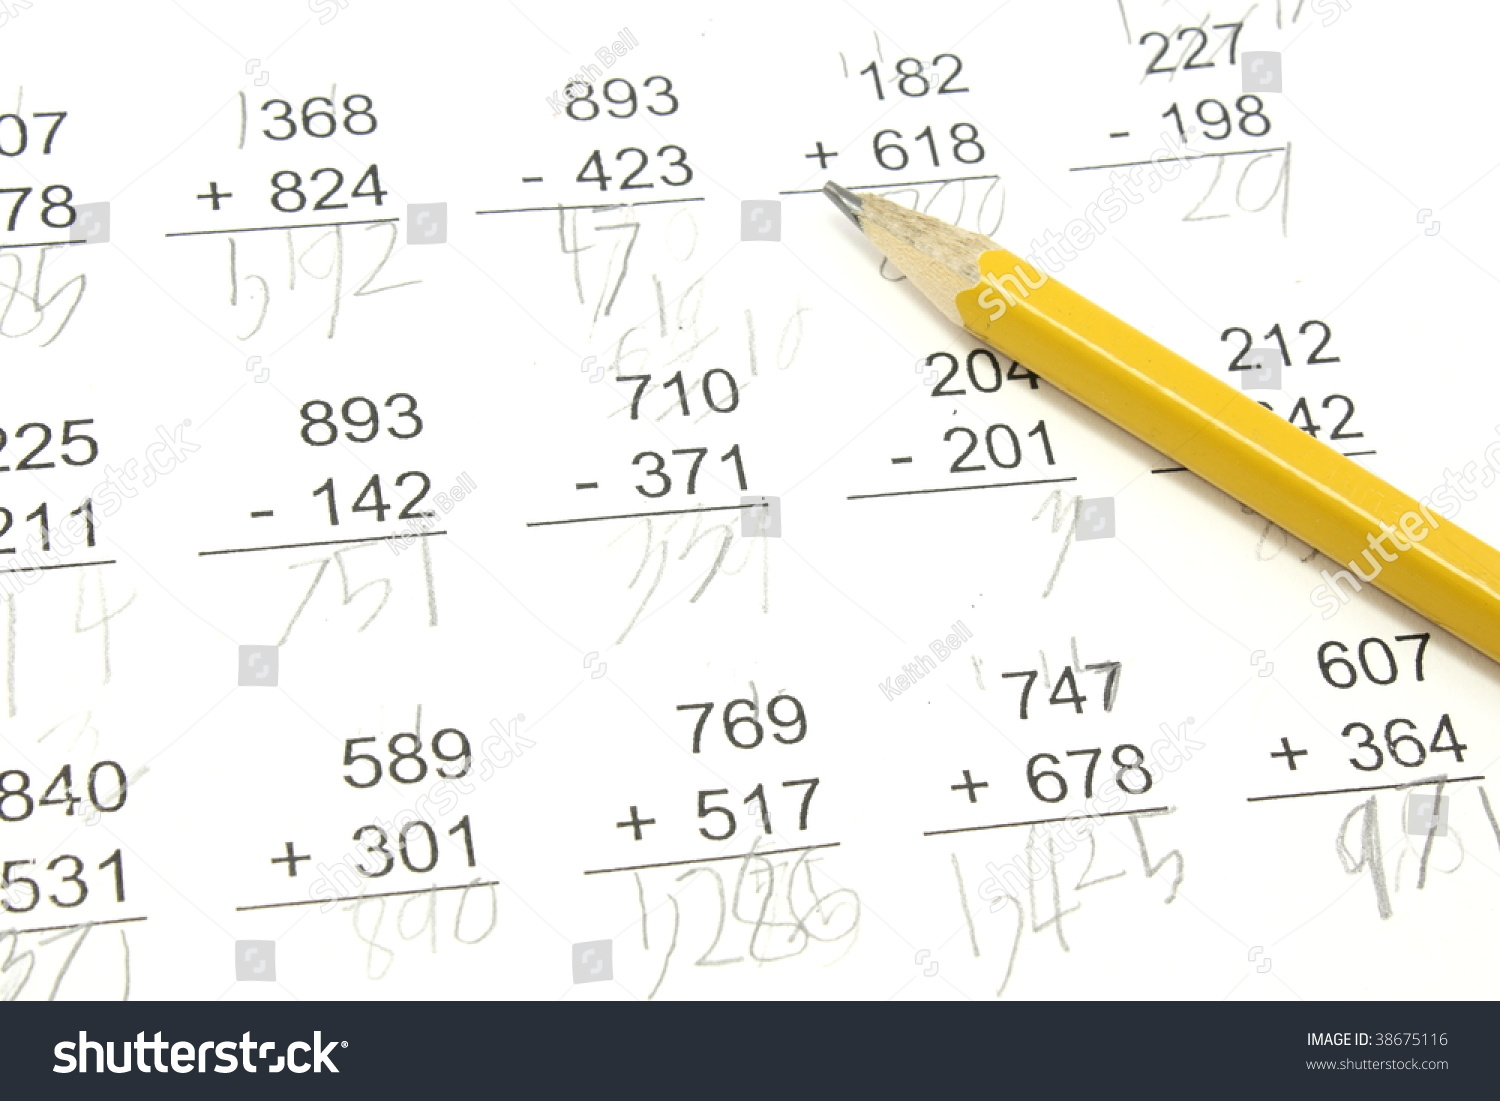 worksheet 3rd Grade Math Problems 3rd grade math problems pencil on stock photo 38675116 shutterstock with top pf paper